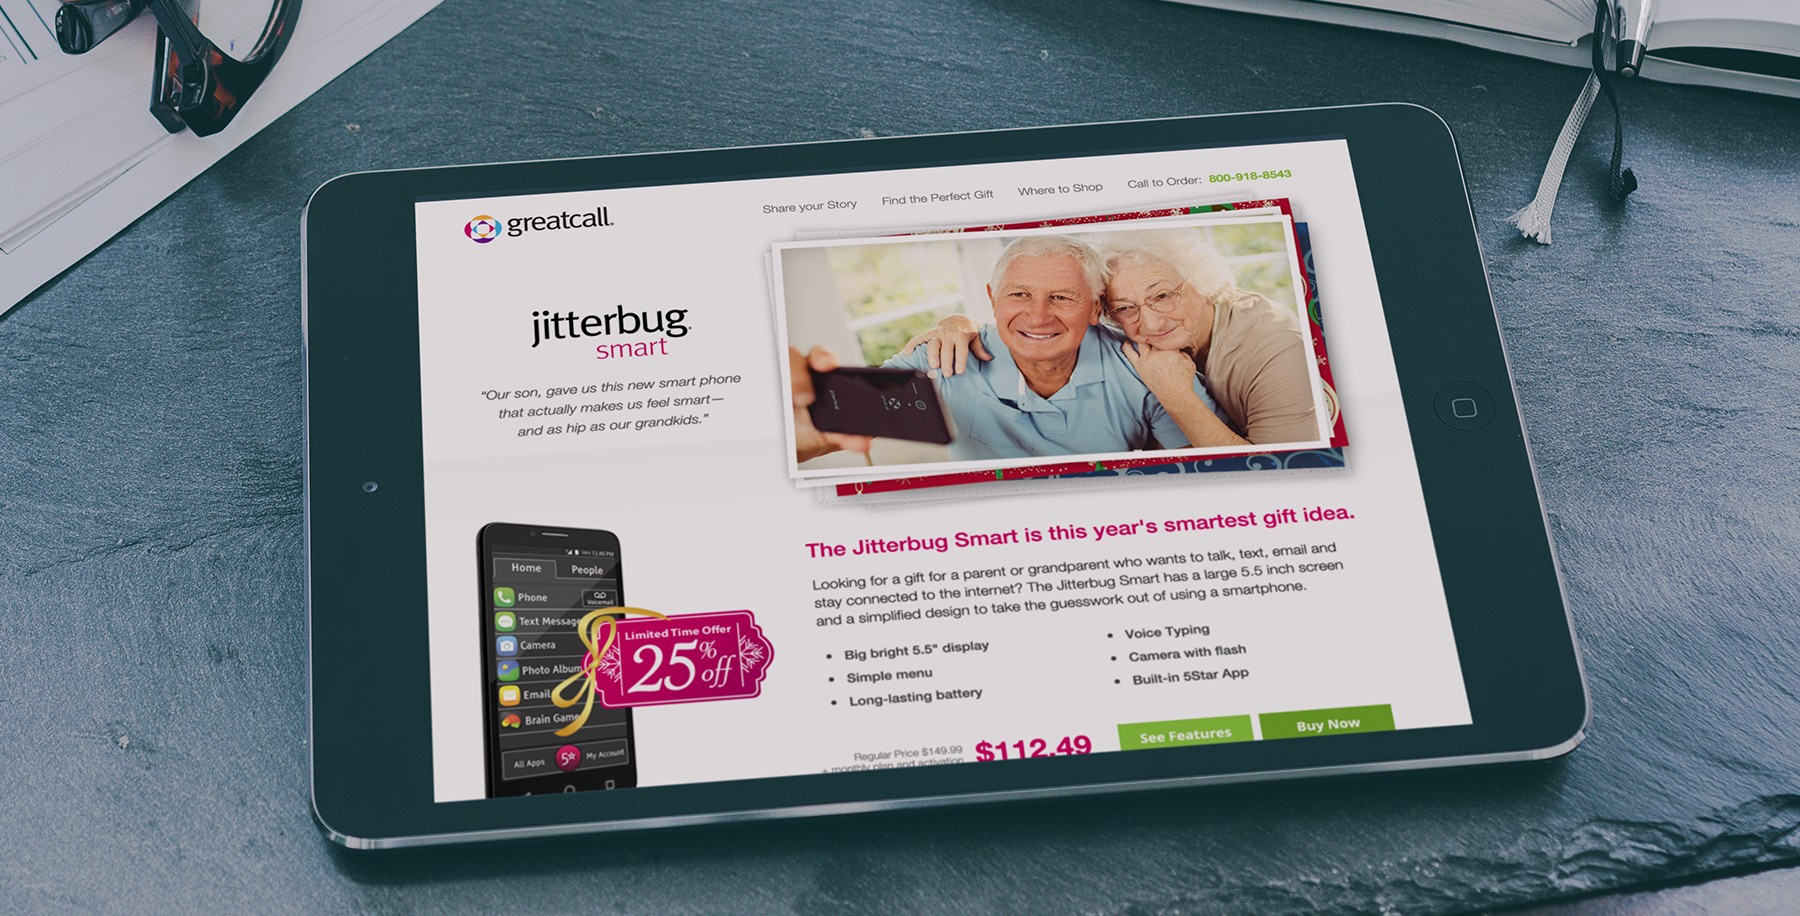 GreatCall website on tablet screen